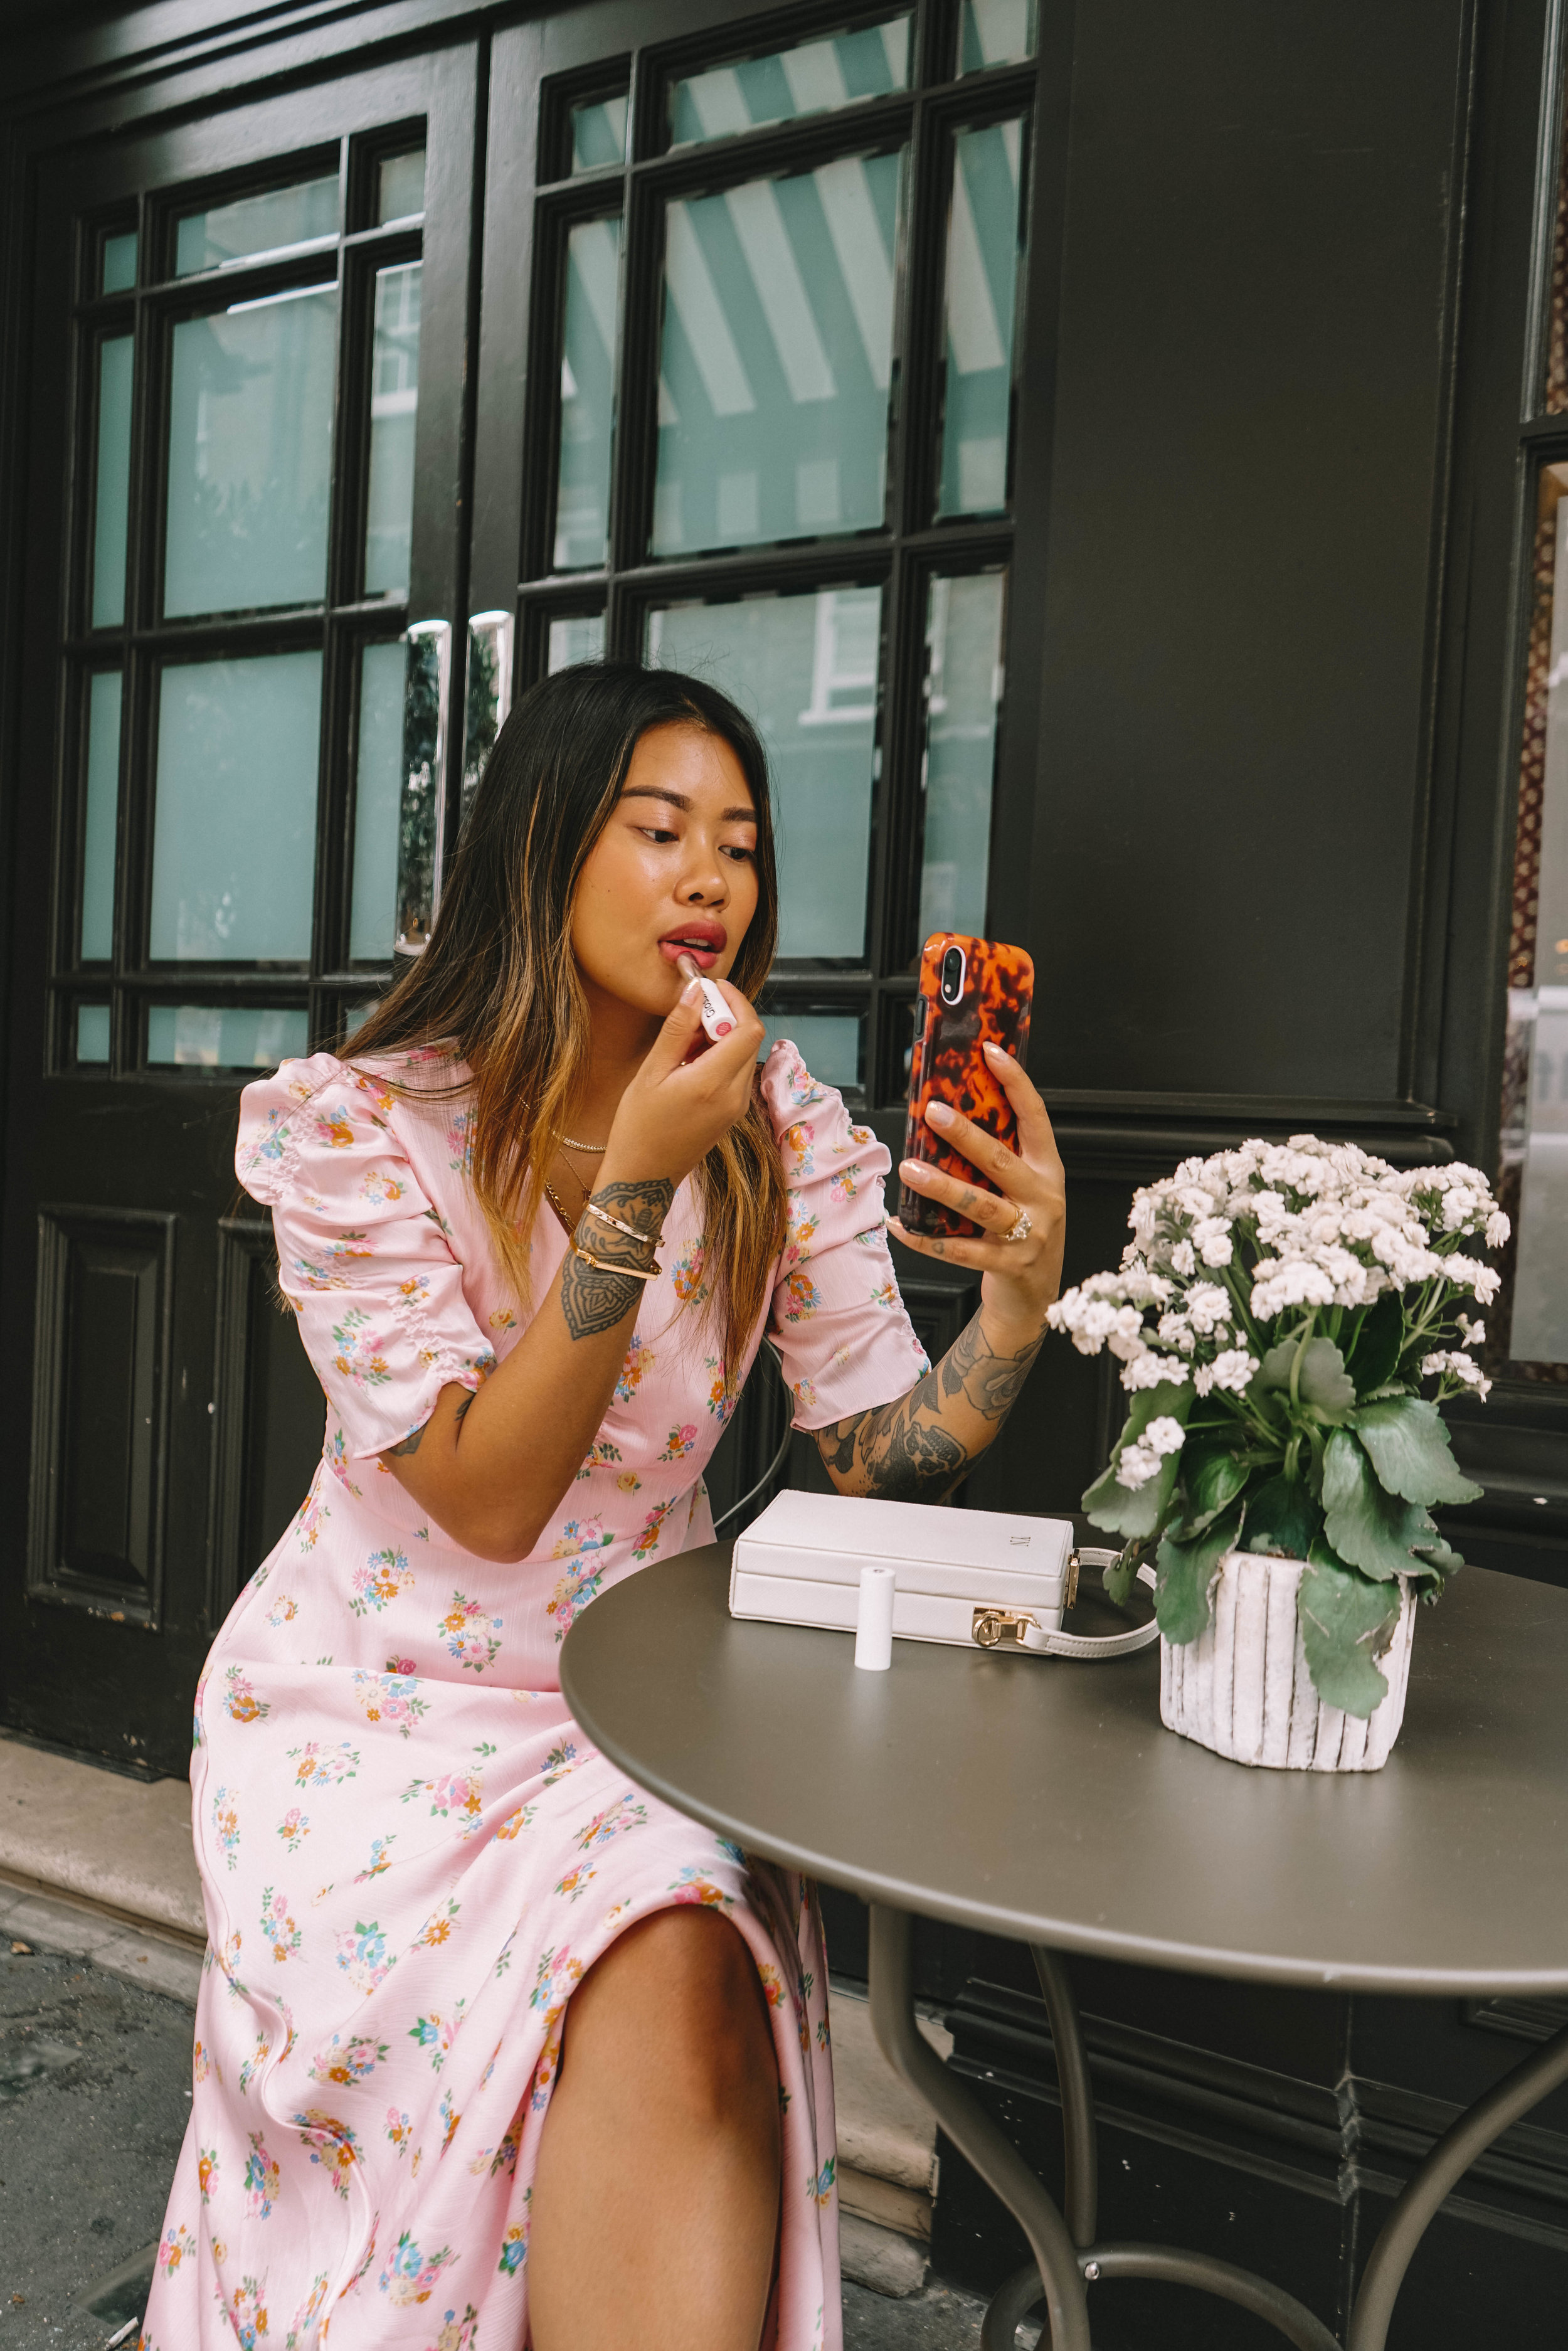 This dress sums up my current mood. Its girly yet fun and playful. With its floral print I wanted to keep the styling pretty simple. I paired with Daily Edited bag with it and wore my go-to trainers the Reebok Club C. -